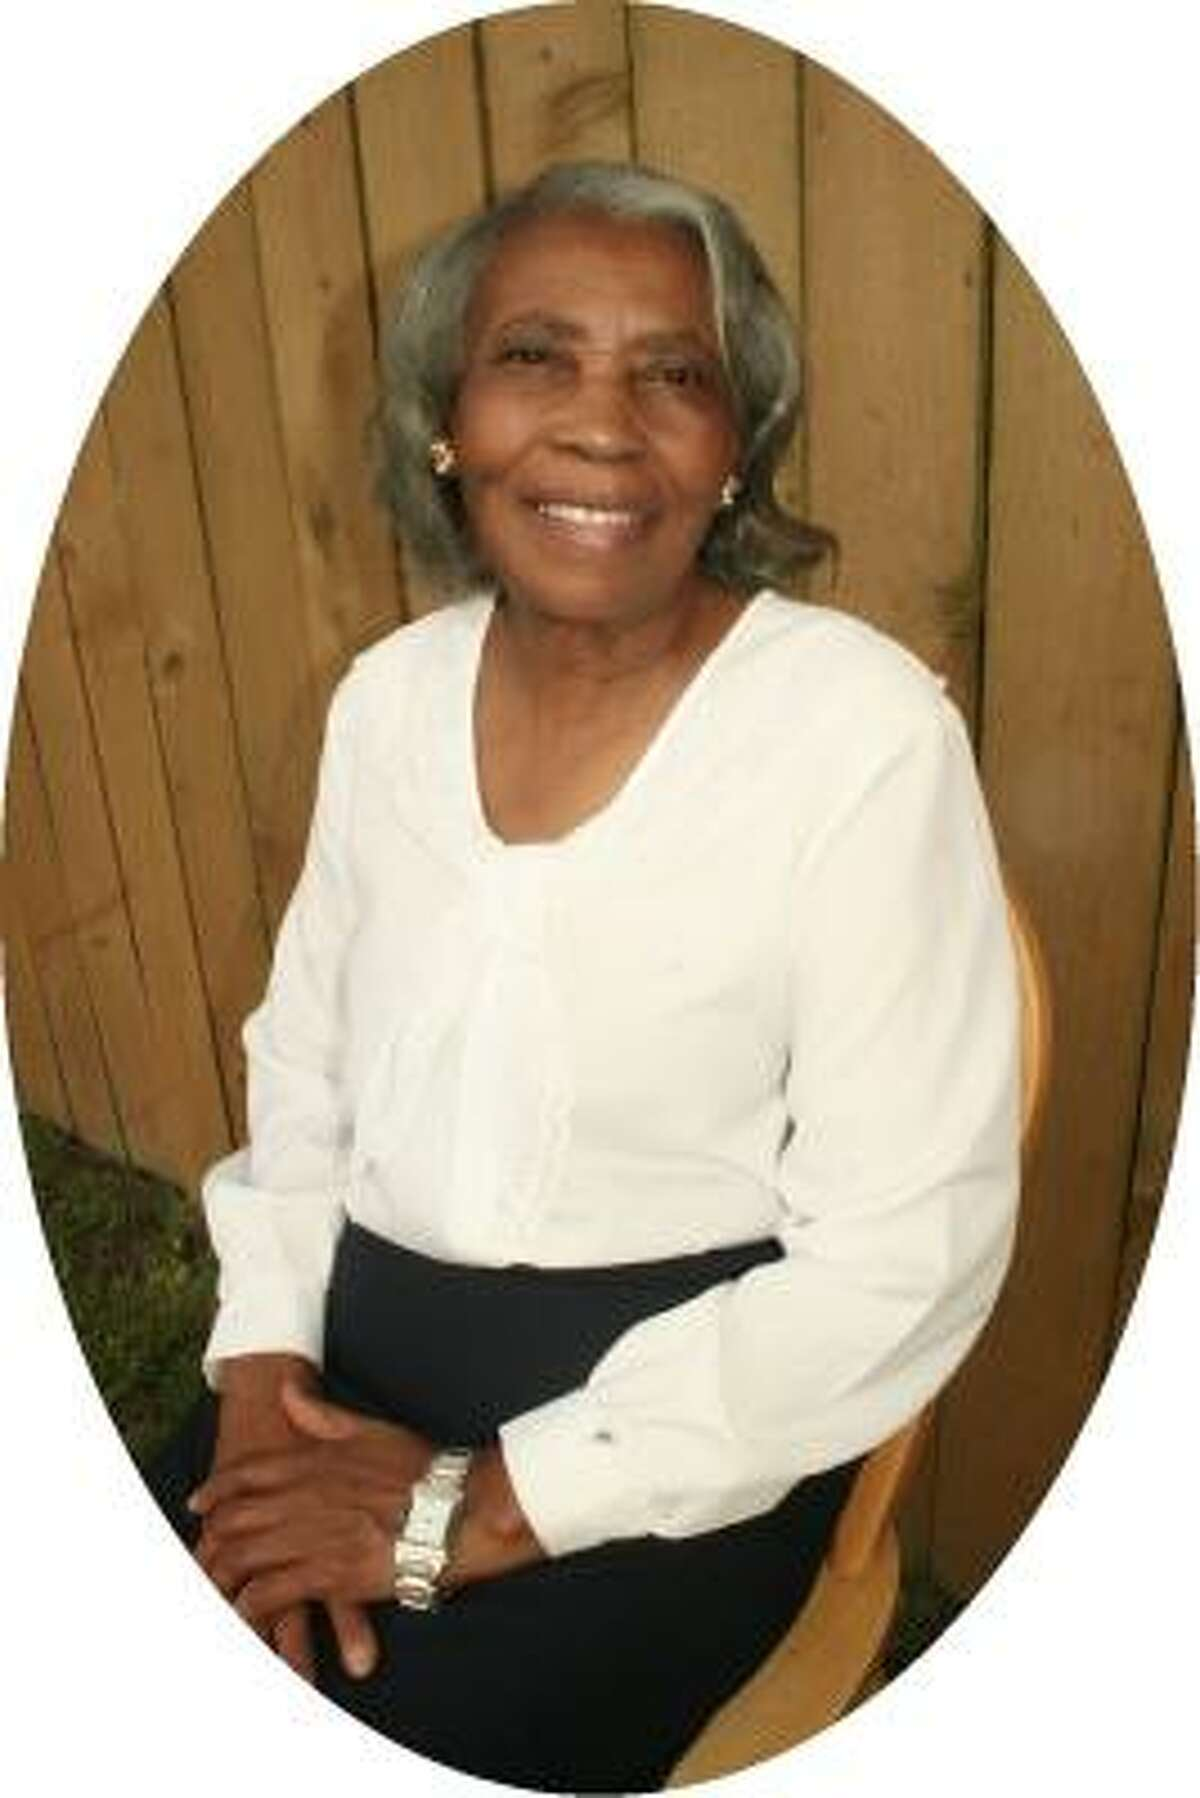 This Mother's Day, I would like to express my love and appreciation to the world's greatest mom, Ruthie Lee Newsome-Hatton. She is so extraordinary that she has no enemies on this earth. She raised nine children alone after the death of my father in 1974. She is 82 years old and is still a stunner. She has the patience of Job, the strength of Sampson, the faith of Paul, and the love of Jesus Christ toward everyone she meets. She still drives, gardens cares for great grandchildren, and is the world's greatest cook (she can make pinto beans and cornbread taste like a gourmet meal and her apple pies are the best in Texas). When I was 11 years old, I was kidnapped and molested and my kidnapper was going to surely kill me in Arizona where he had taken me from Texas, but my mother (with only a 10th grade education – that was the highest level at that time – kept the kidnapper on the telephone with her calming spirit while the FBI rescued me then apprehended him. There is nothing in this world that she wouldn't do for her children, including a STRONG disciplinarian when needed, but she seldom had to resort to that type of discipline because if we knew we had disappointed her, that was more effective than the almighty strap or switch. I love you mom and would gladly lie in the path of a moving train for you. Happy Mother's Day!